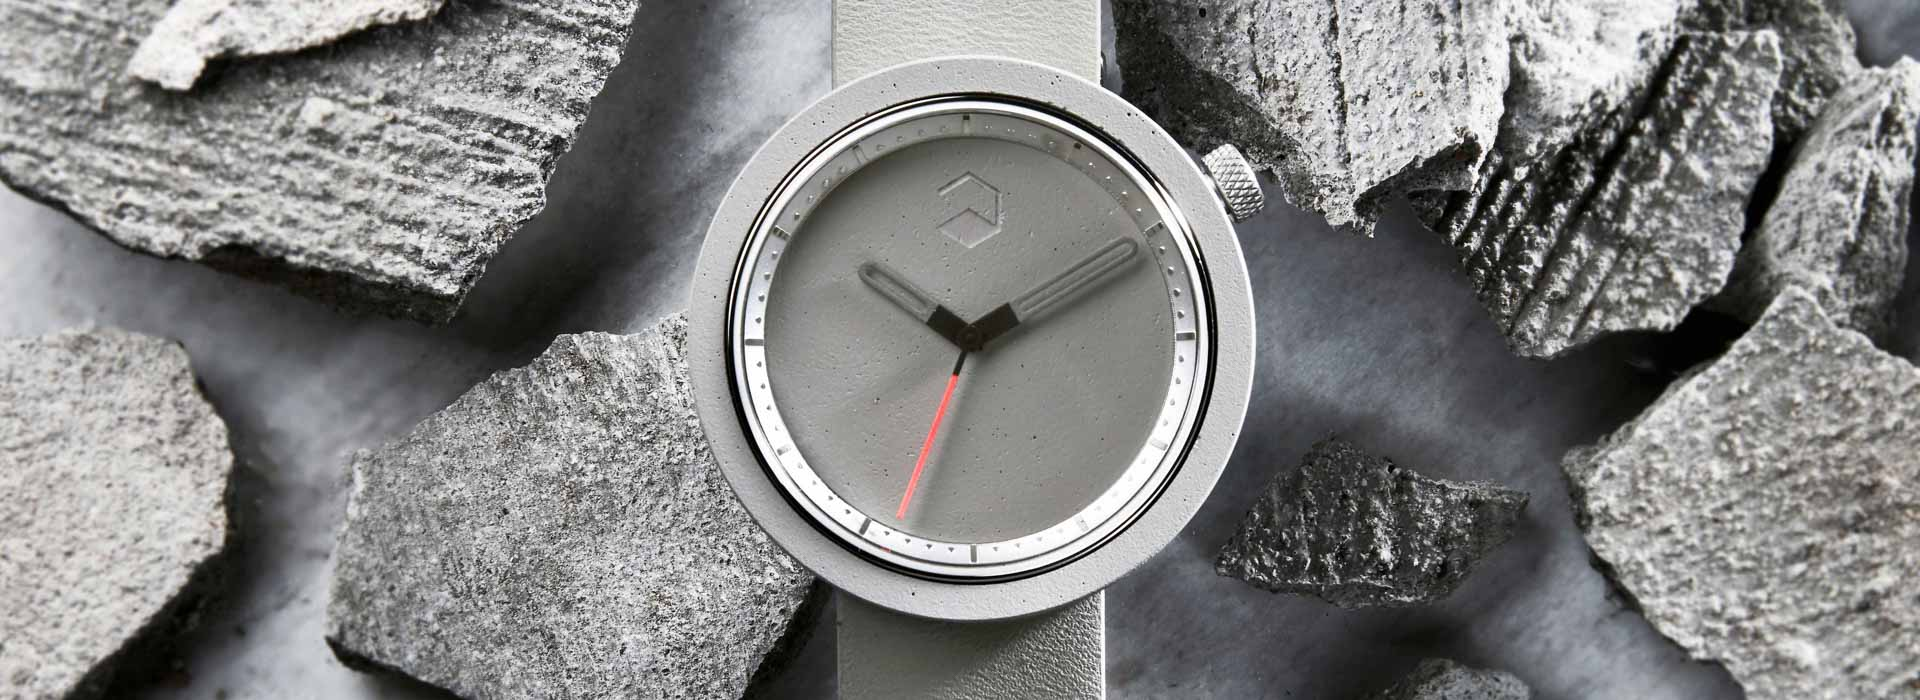 aggregate watches